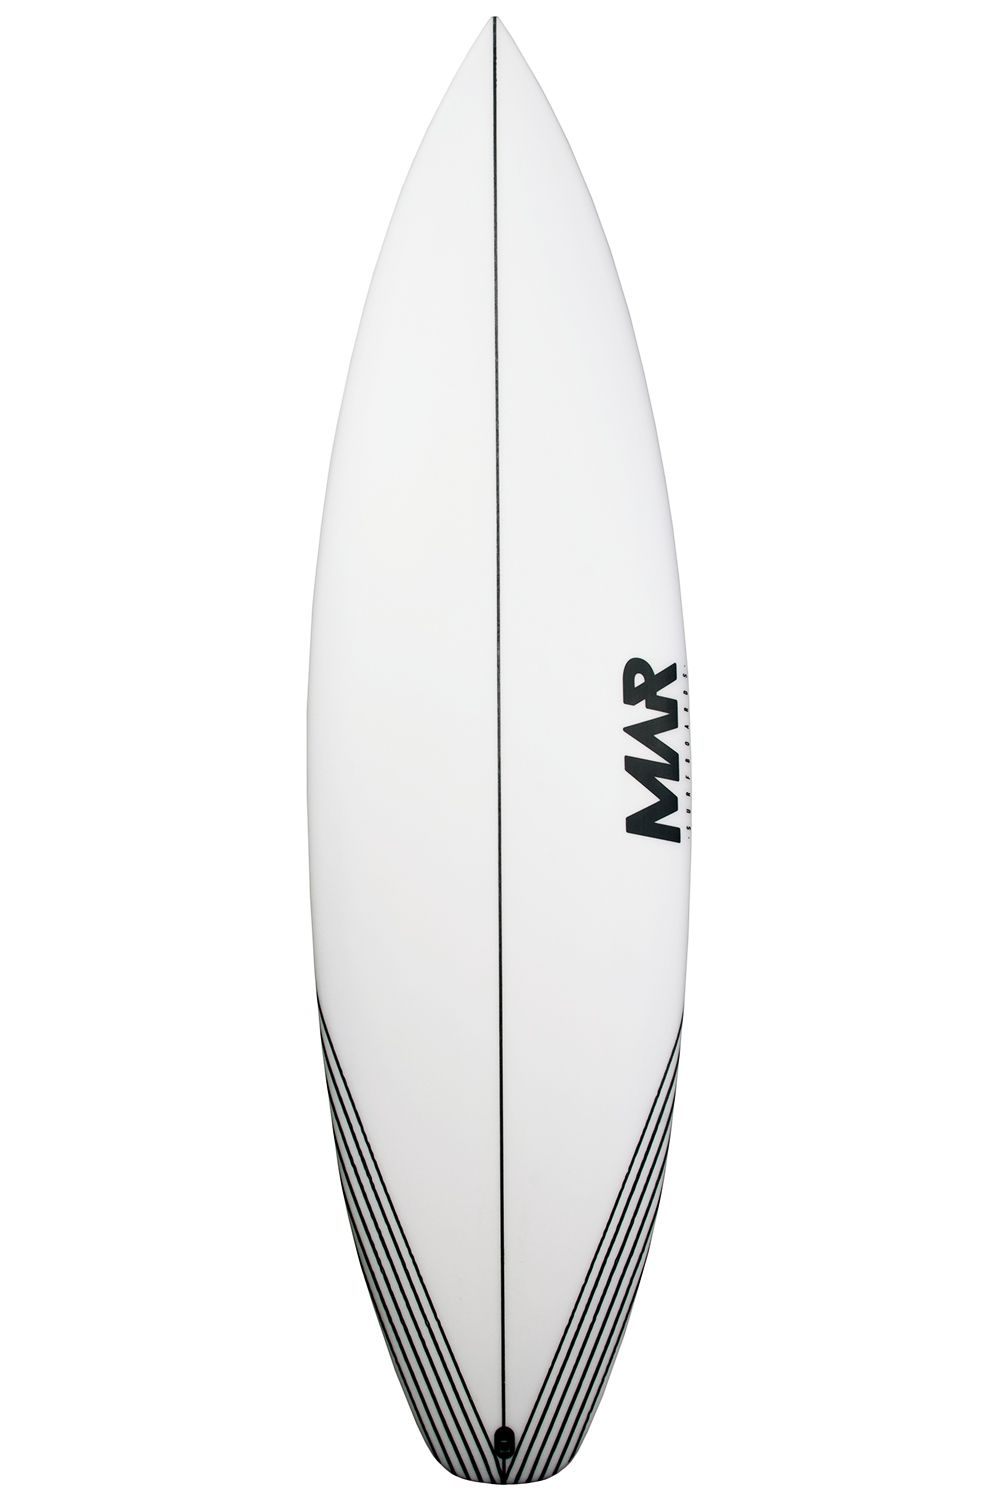 Prancha Surf Mar CAPTAIN 5'11 Squash Tail - White FCS II 5ft11